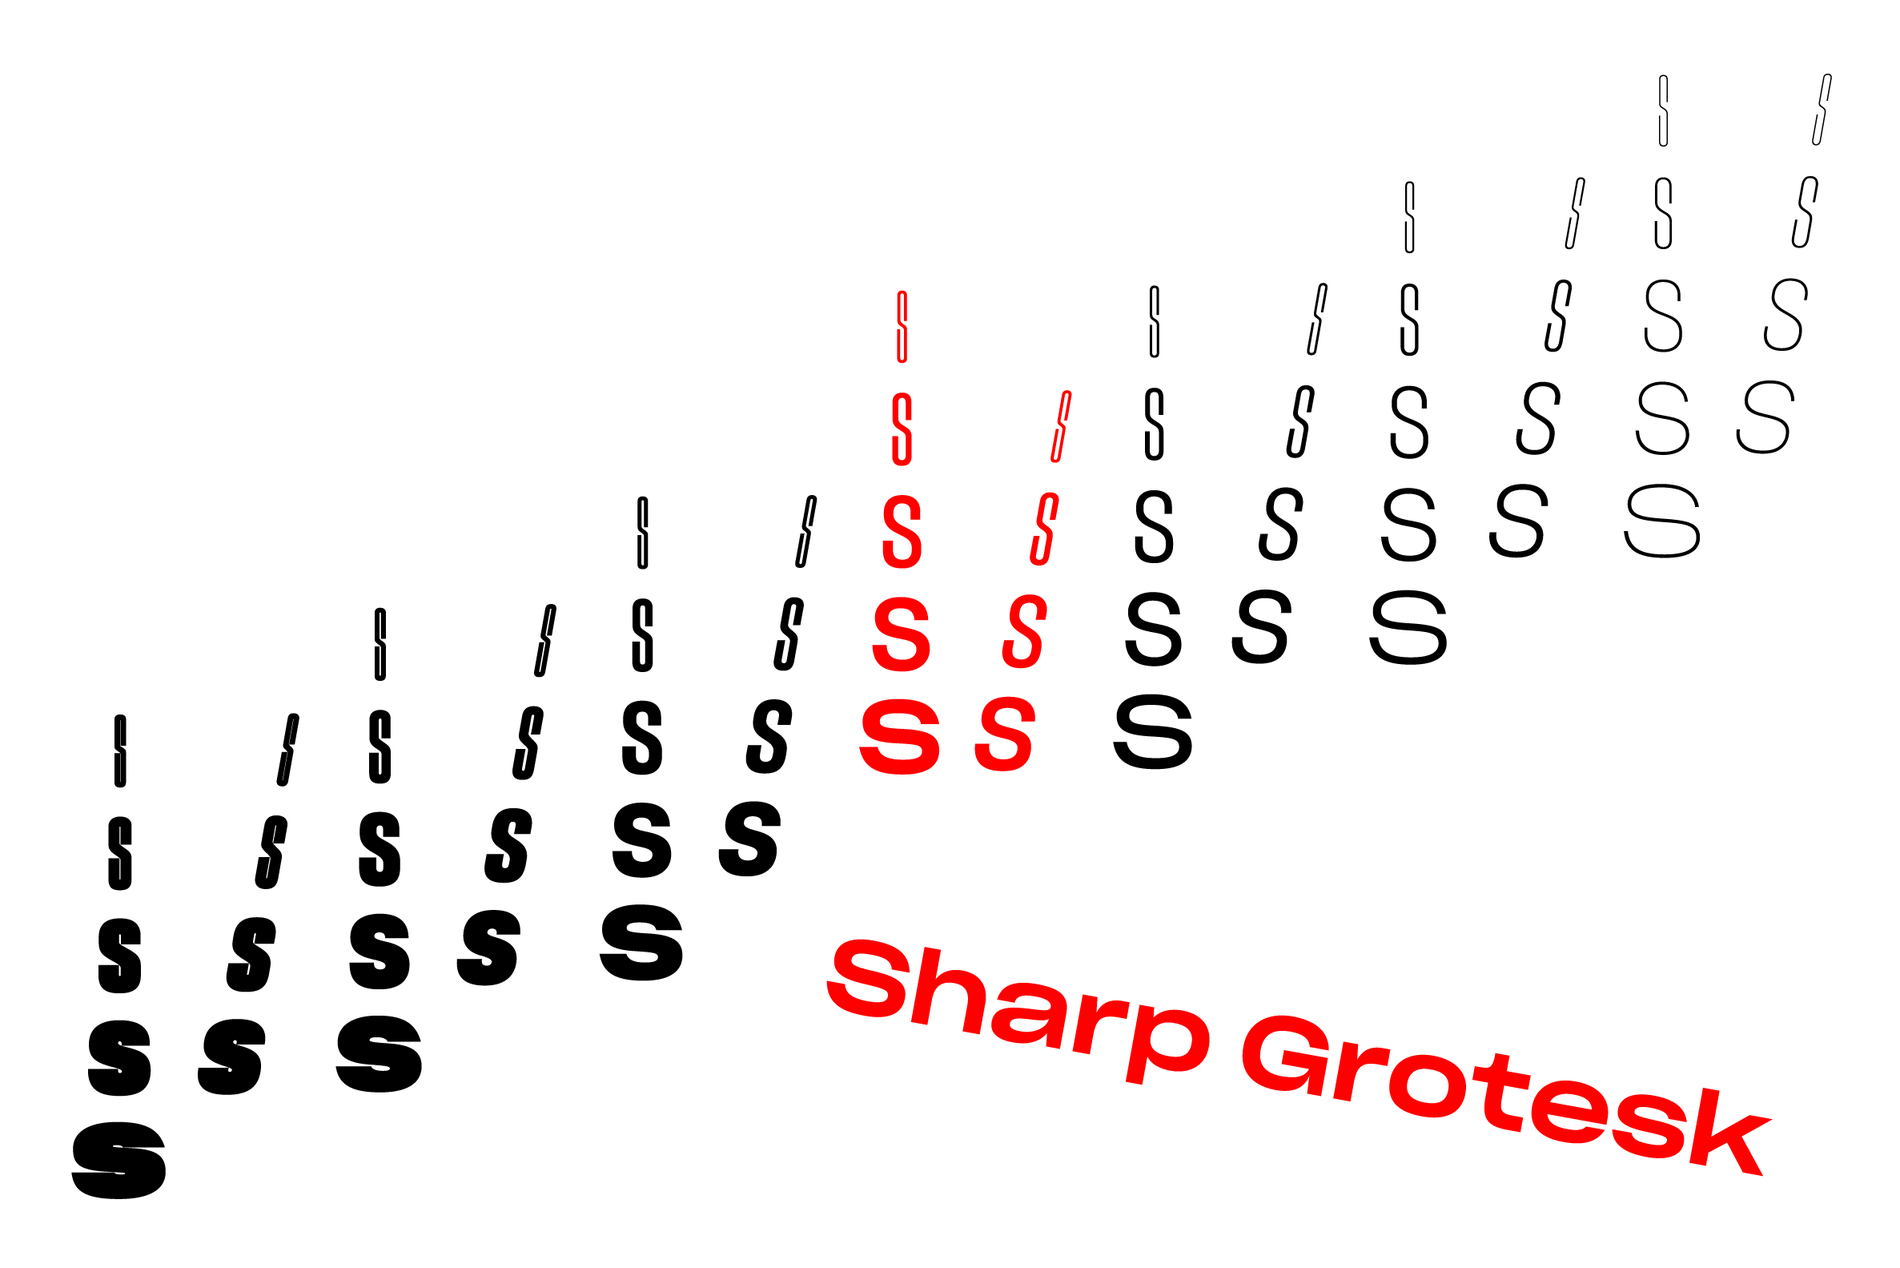 Sharp Grotesk Thumbnail Corrected